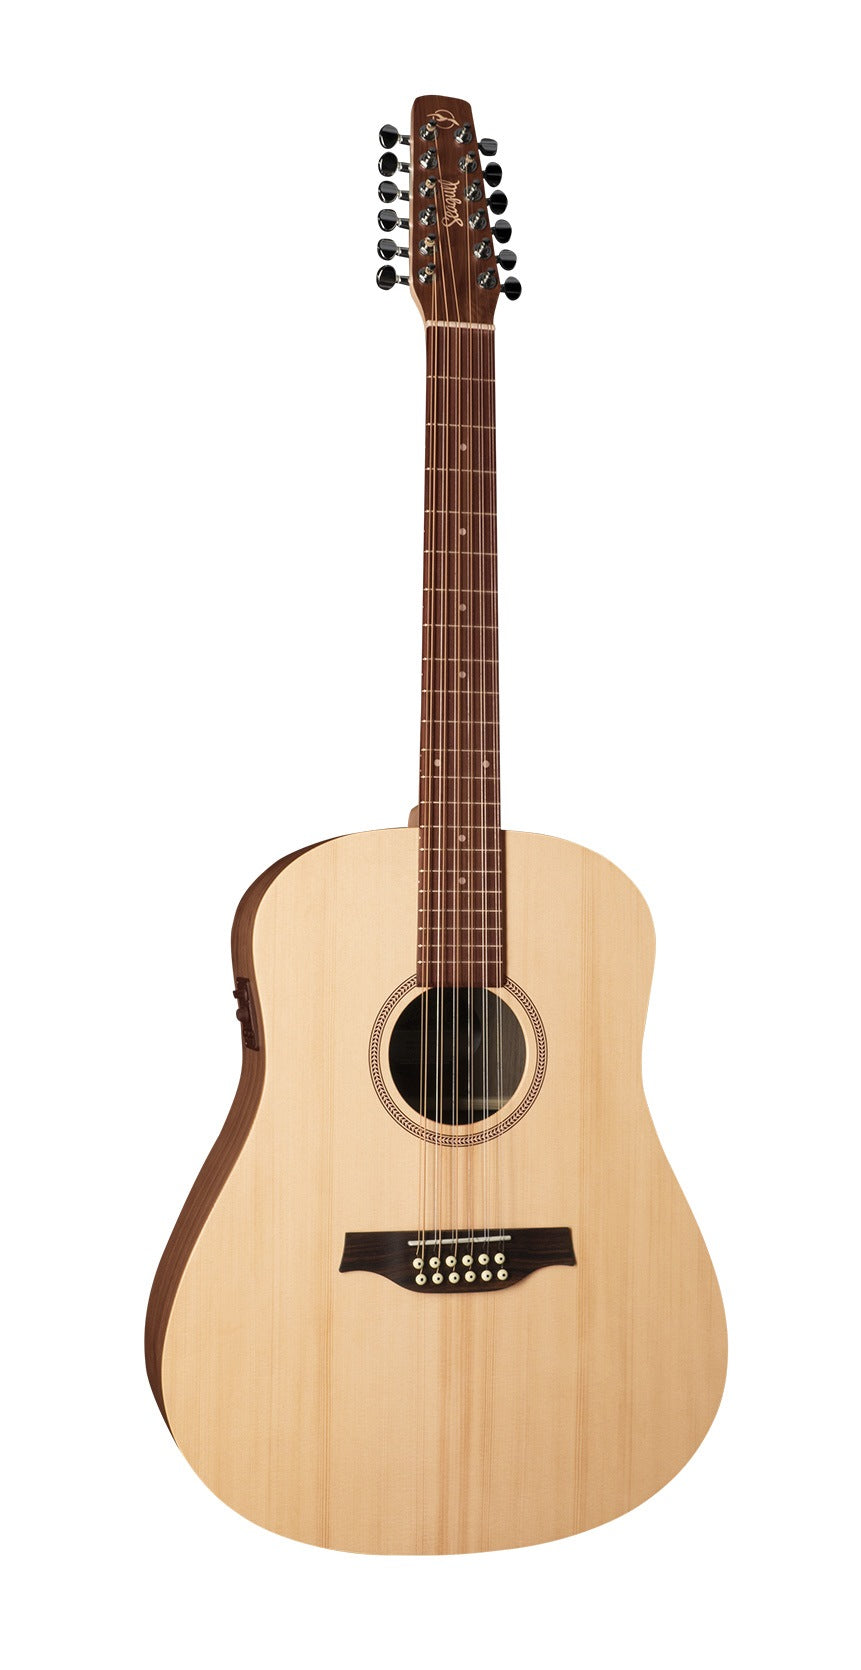 Seagull Walnut 12 Isys T 12 String Acoustic Electric Guitar